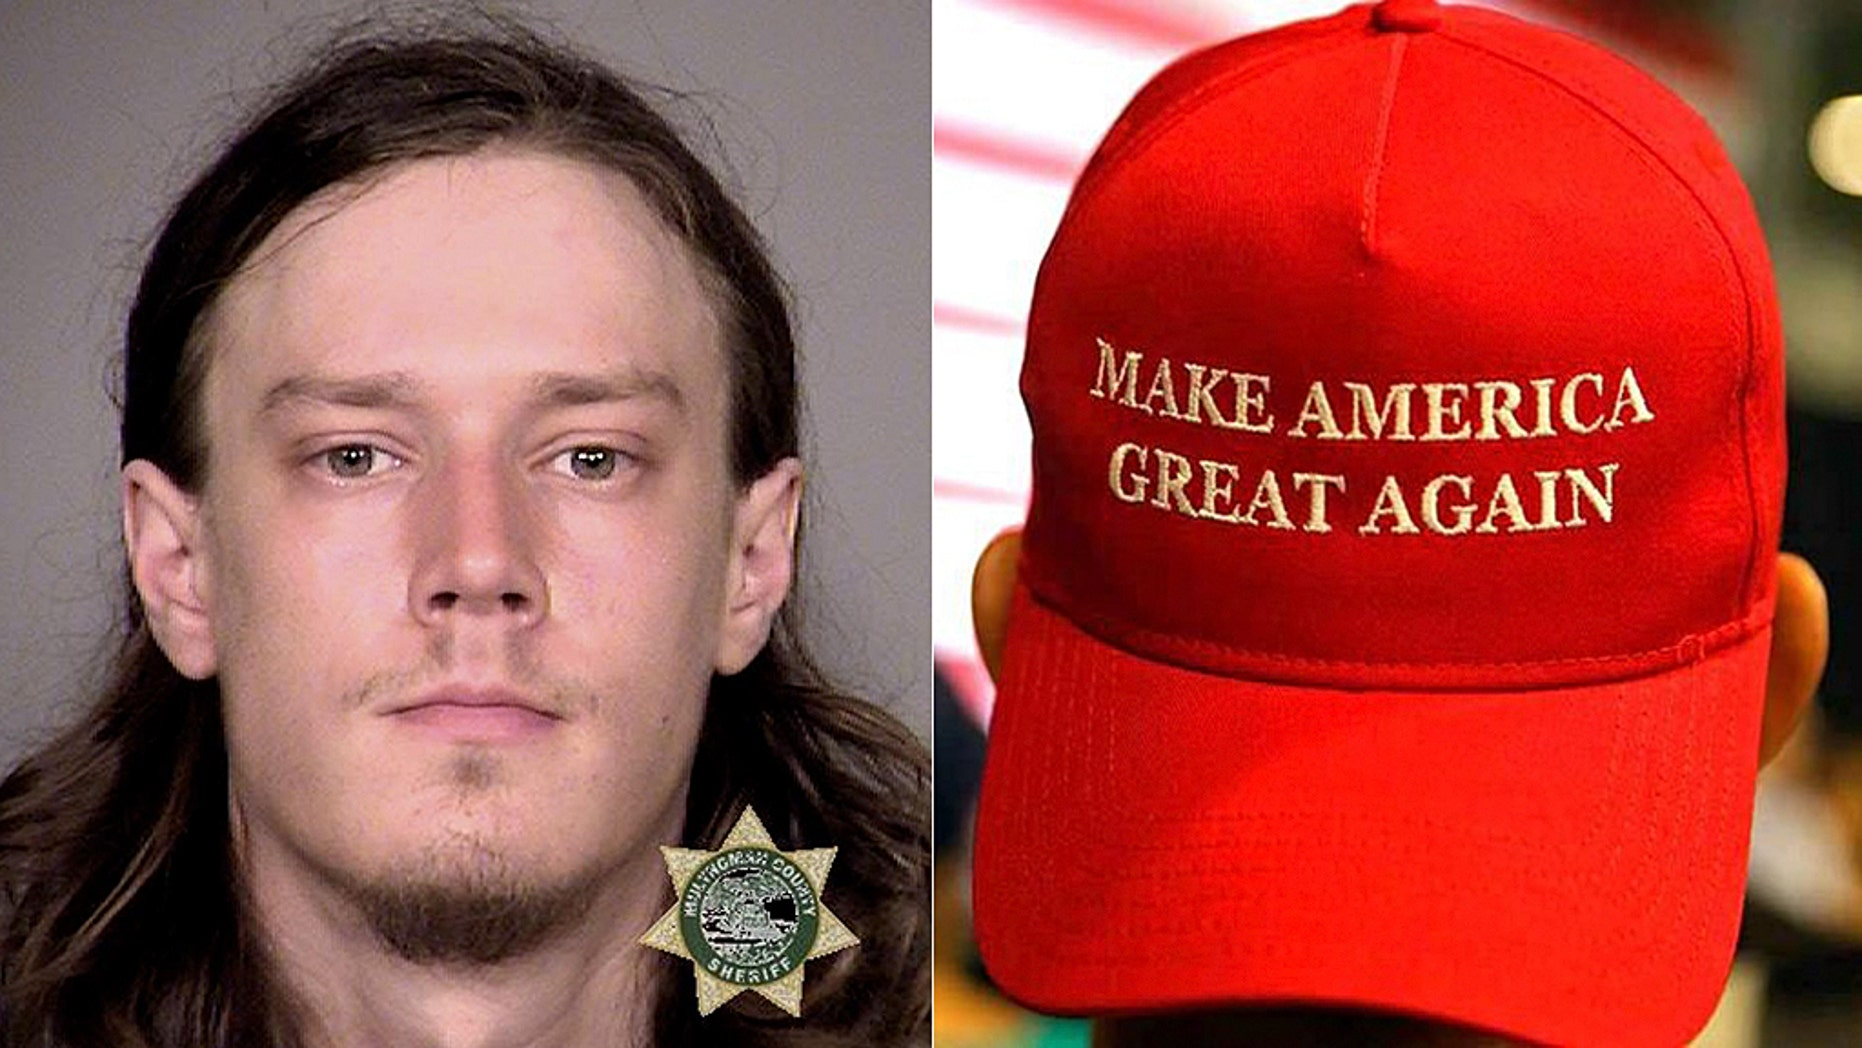 """Officers arrested Leor Bergland, 30, of San Francisco, Wednesday after he allegedly slashed a man with a sword after the victim allegedly knocked his """"Make America Great Again"""" hat from his head, police said."""